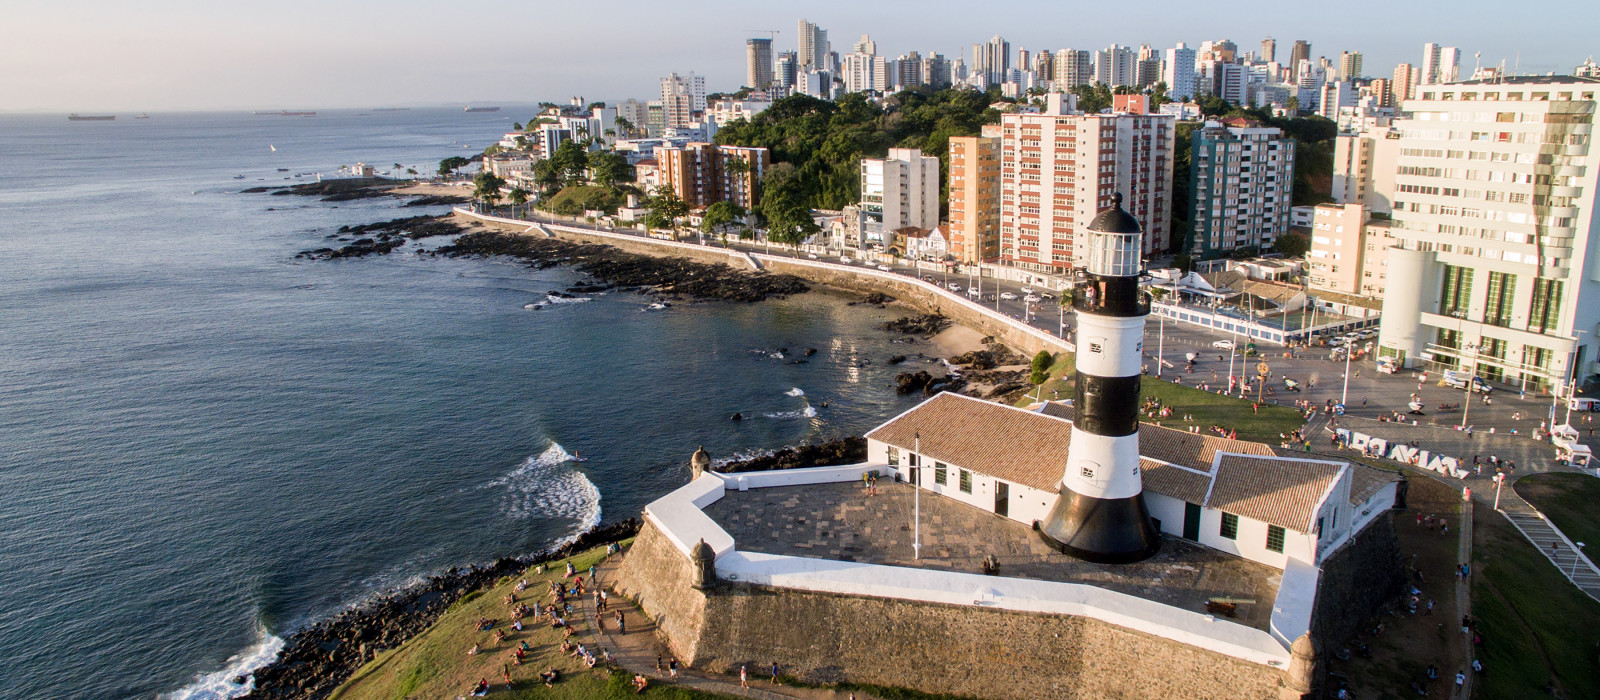 Aerial view of Barra Lighthouse and Salvador cityscape, Bahia, Brazil, South America